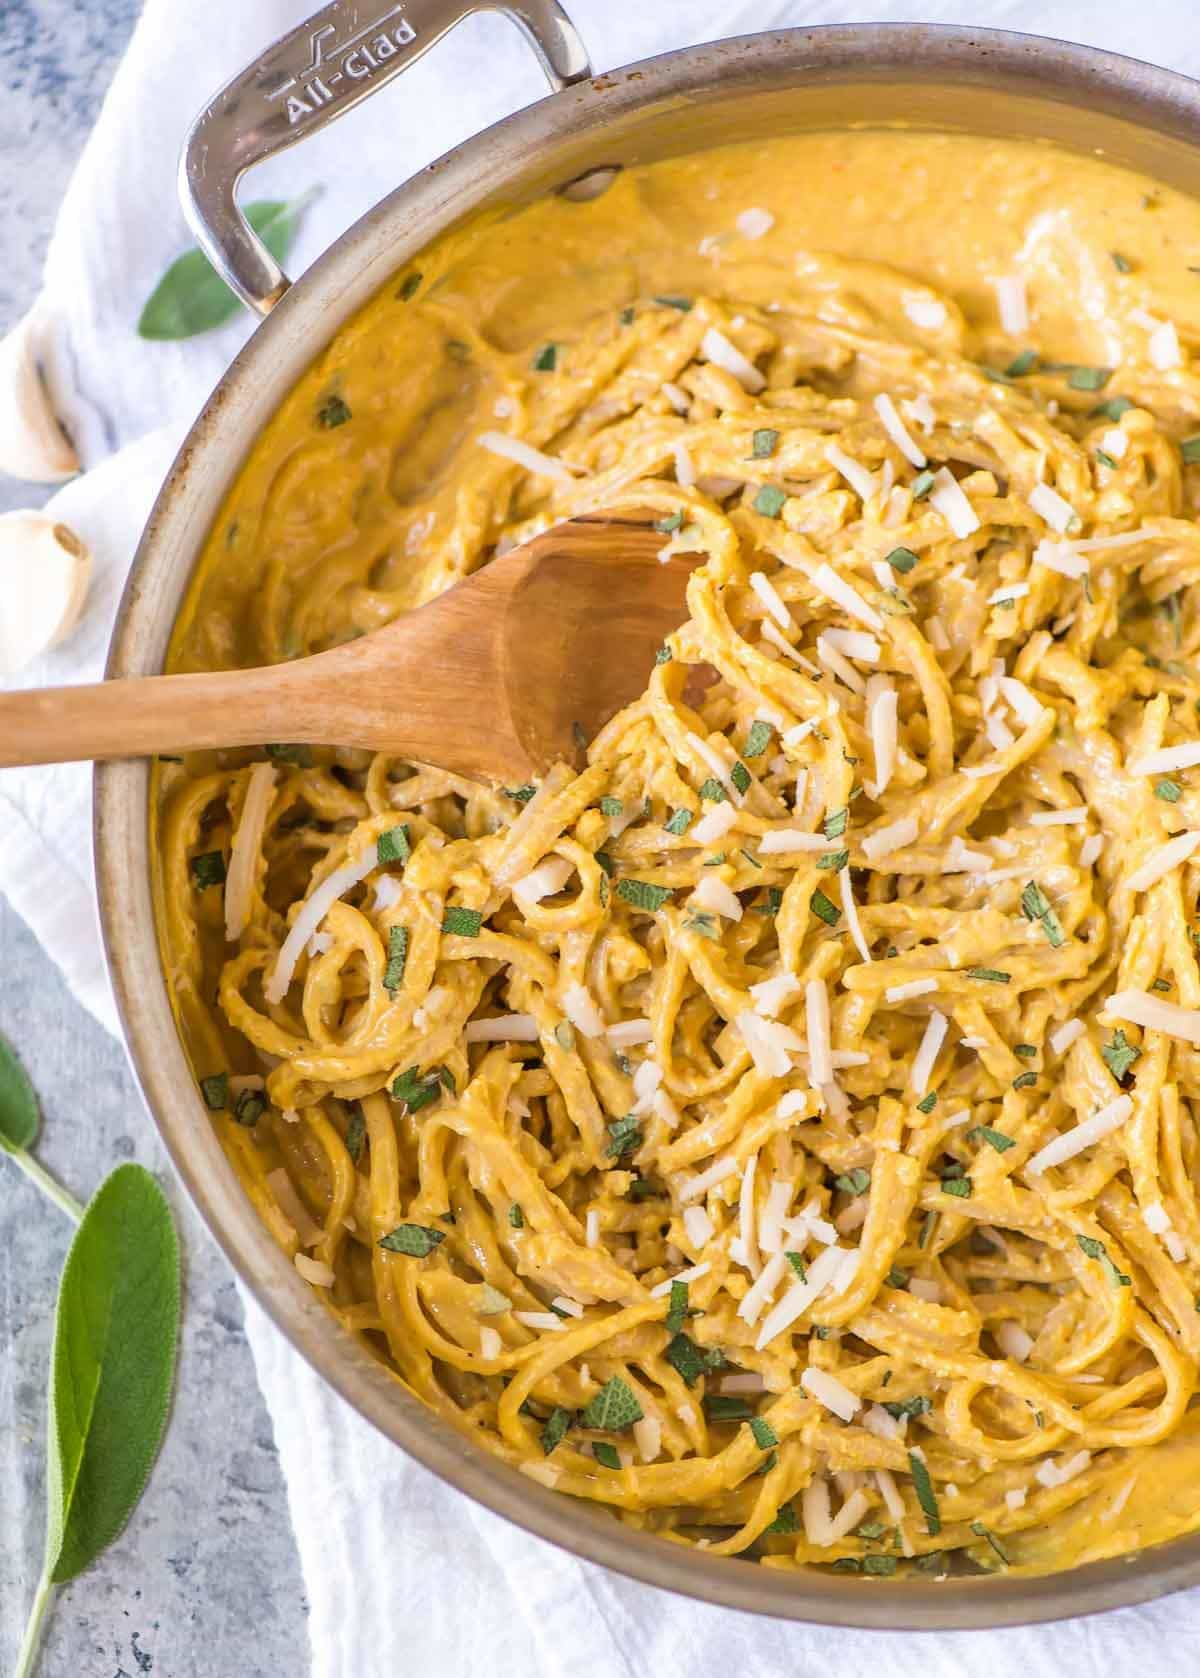 Creamy and delicious pumpkin pasta sauce with noodles